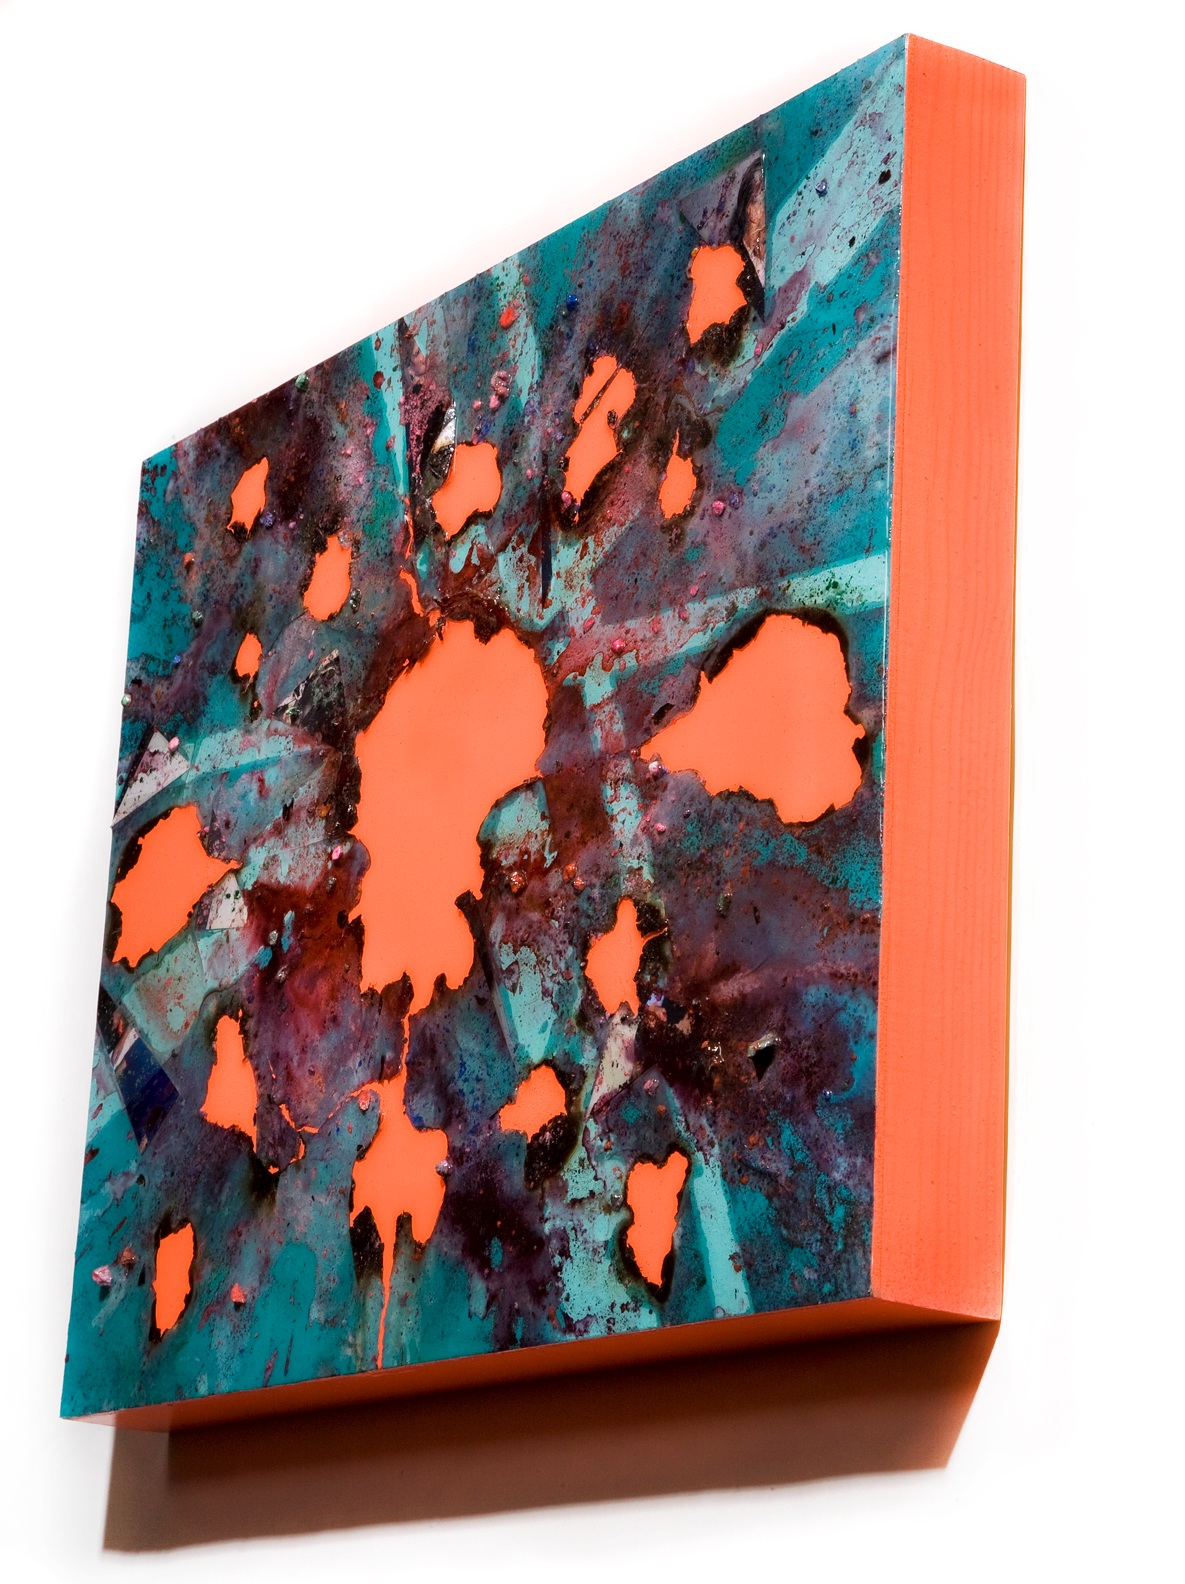 """SERIE I, Untitled SIDE VIEW (teal/day-glo orange), photographs, photo background paper, chalk, spray paint, packing tape, powder drink, glue, epoxy resin on wood panel, 16""""x20""""x2"""", 2018"""